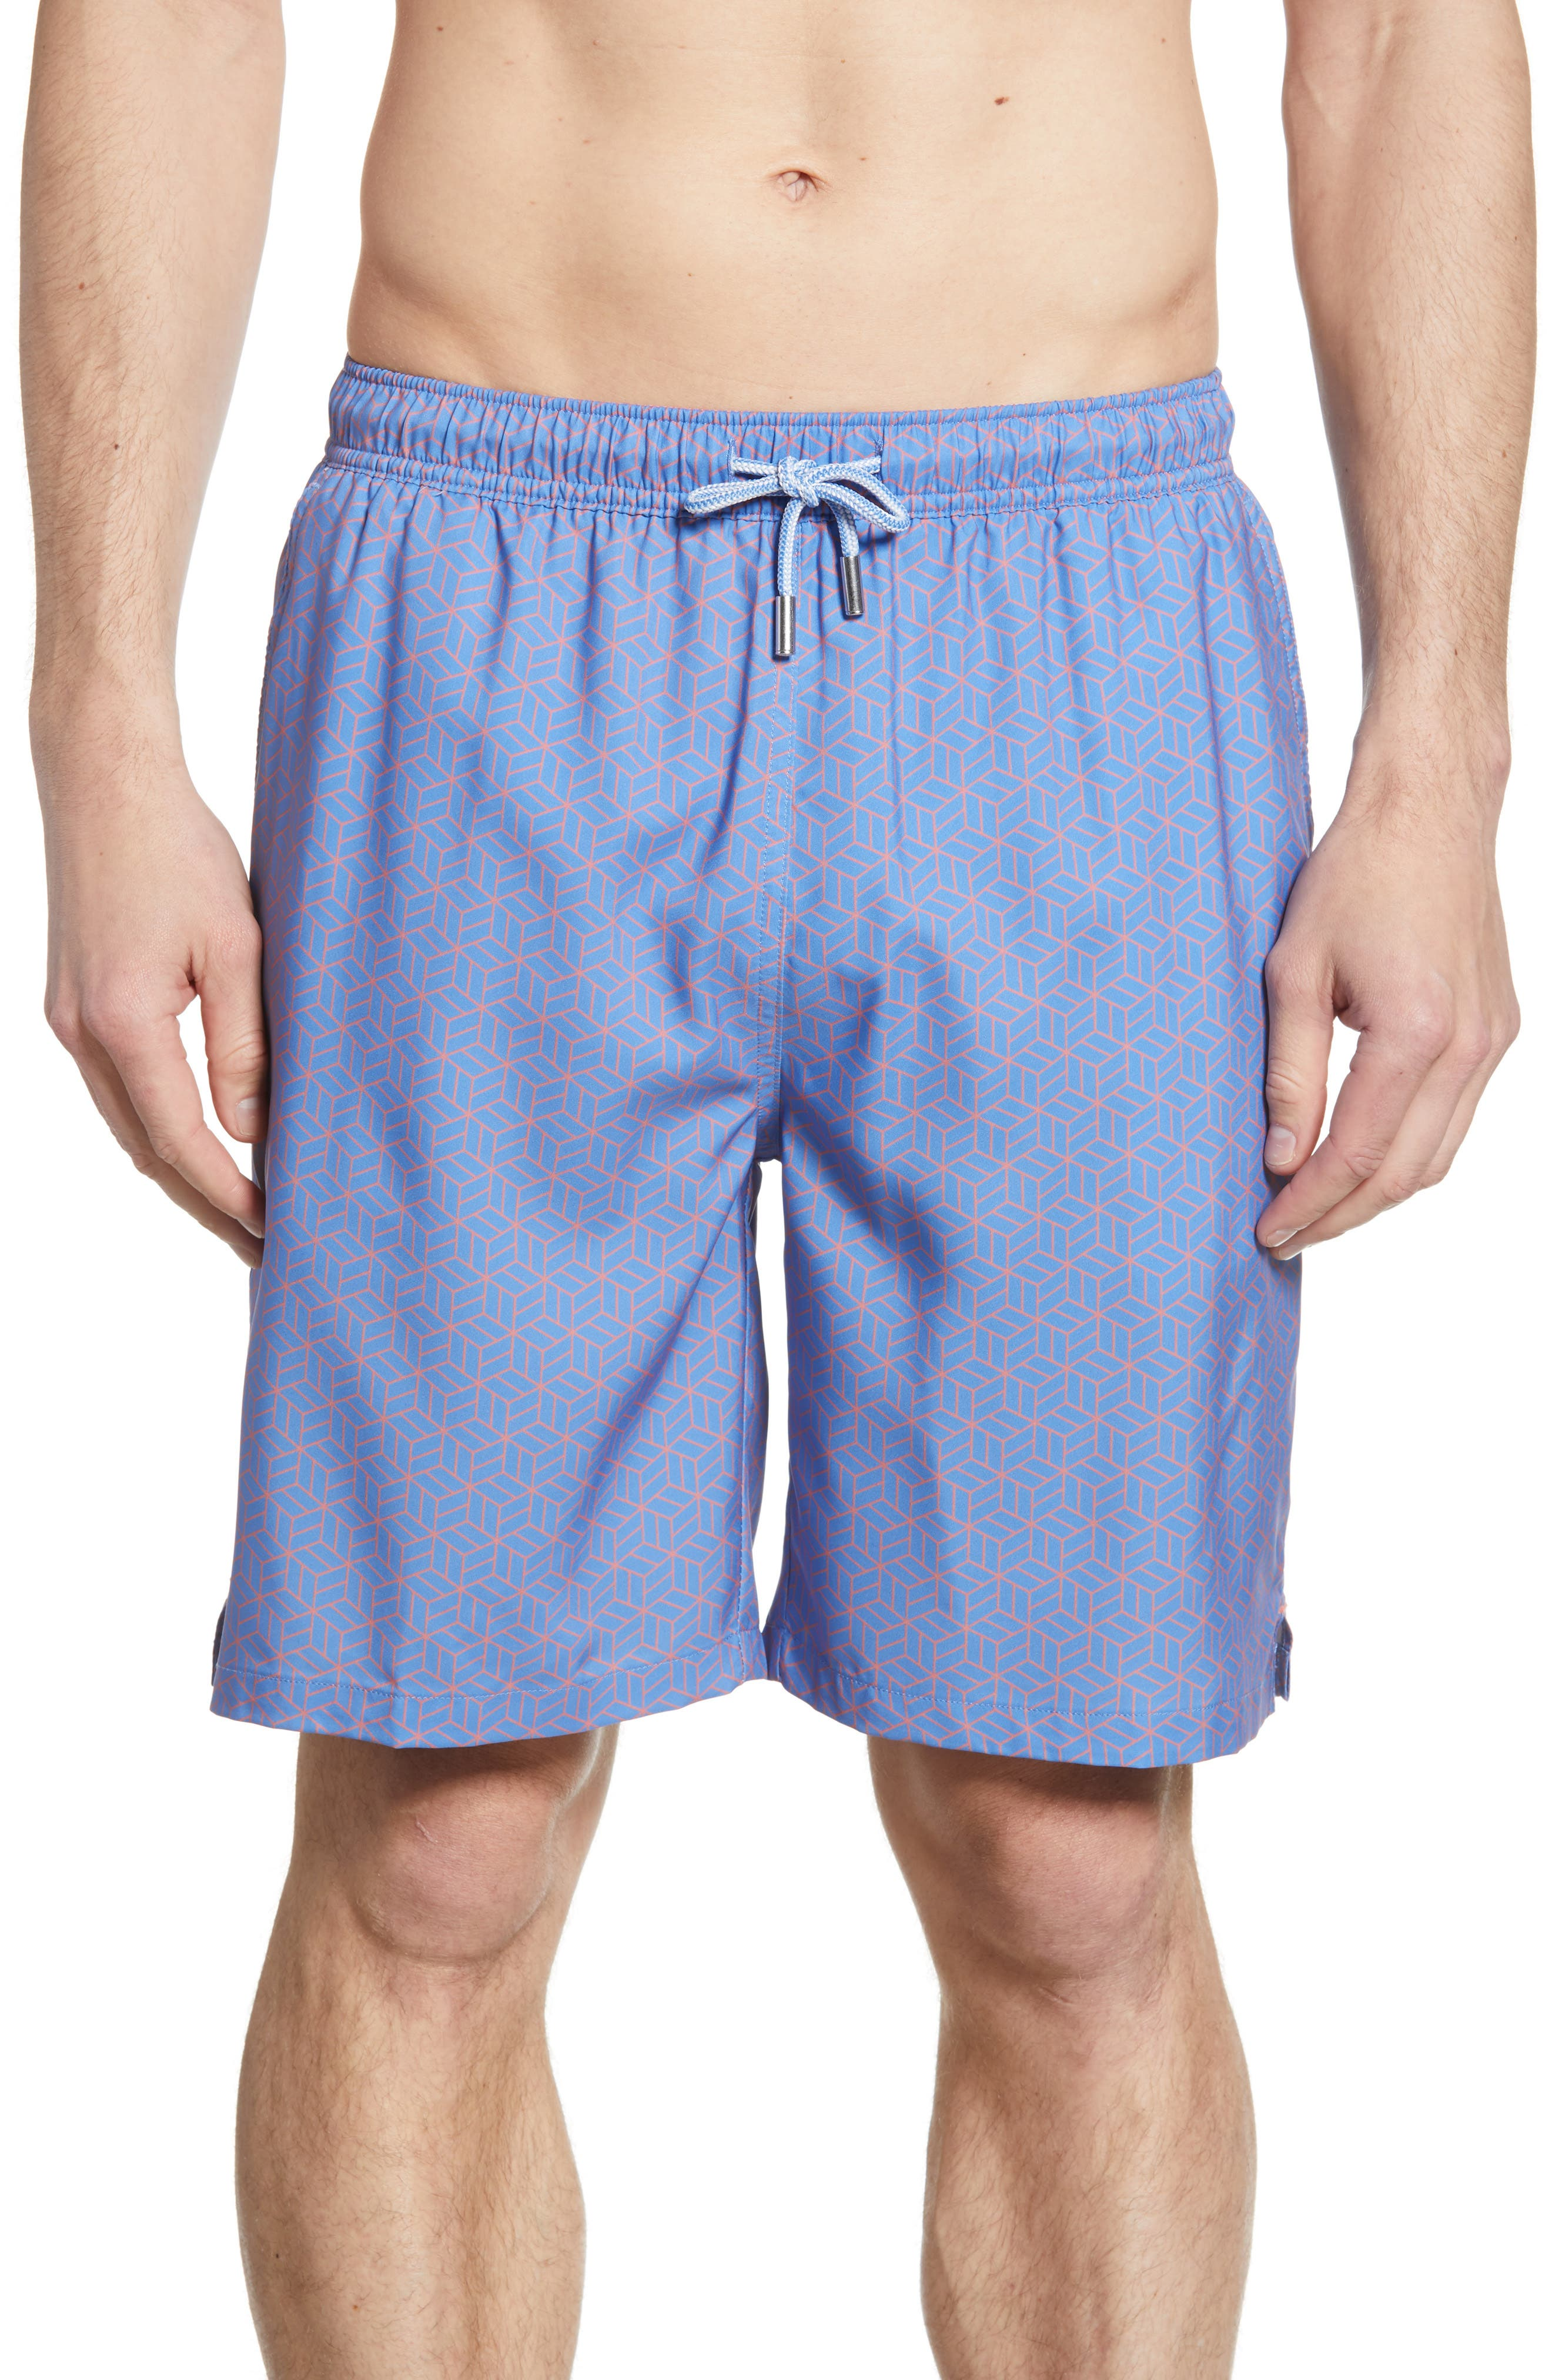 Peter Millar Coastal Cubist Swim Trunks, Blue